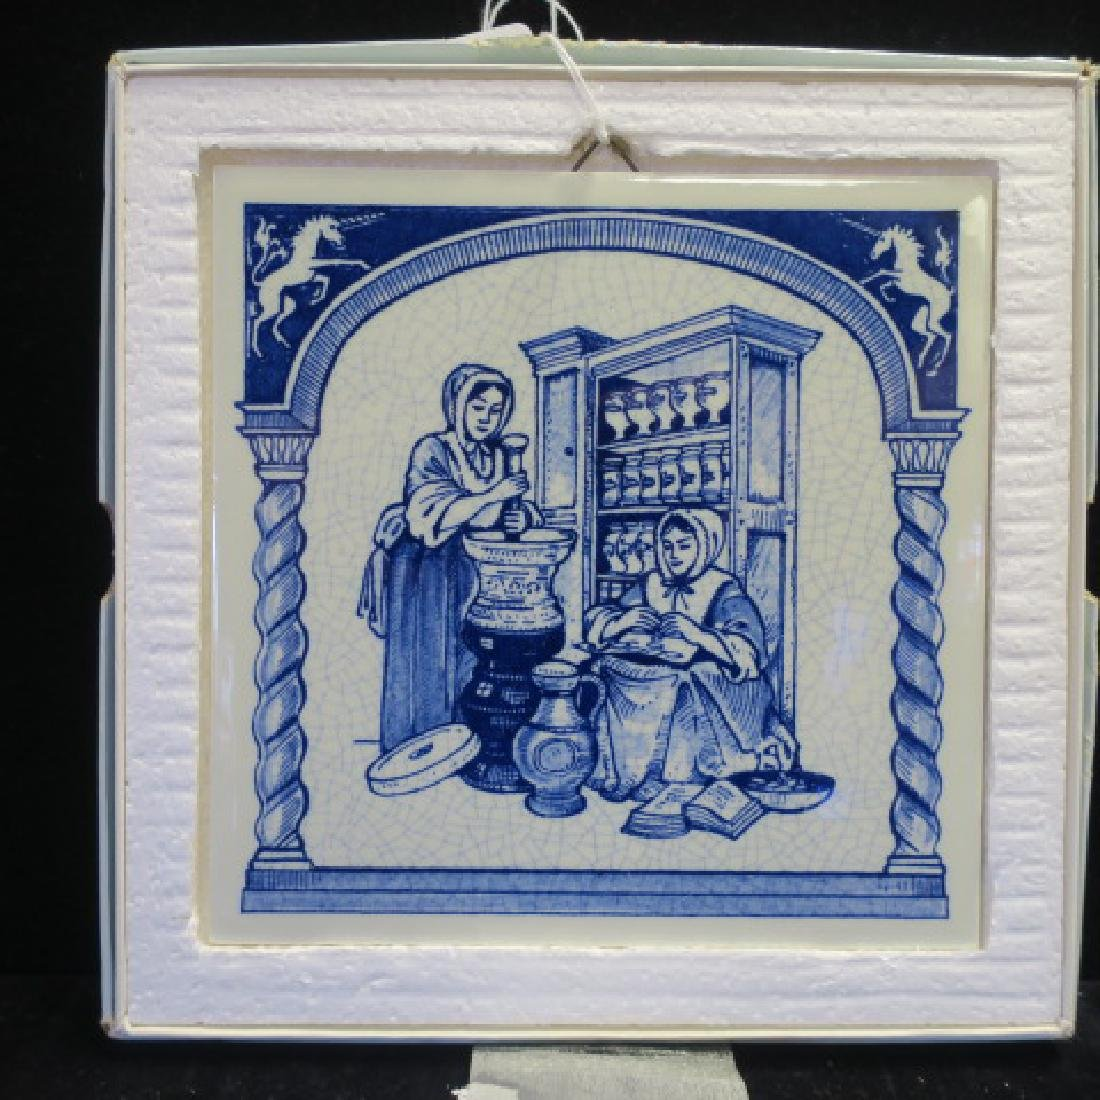 Delft English Pill Tile front BURROUGHS WELLCOME CO: